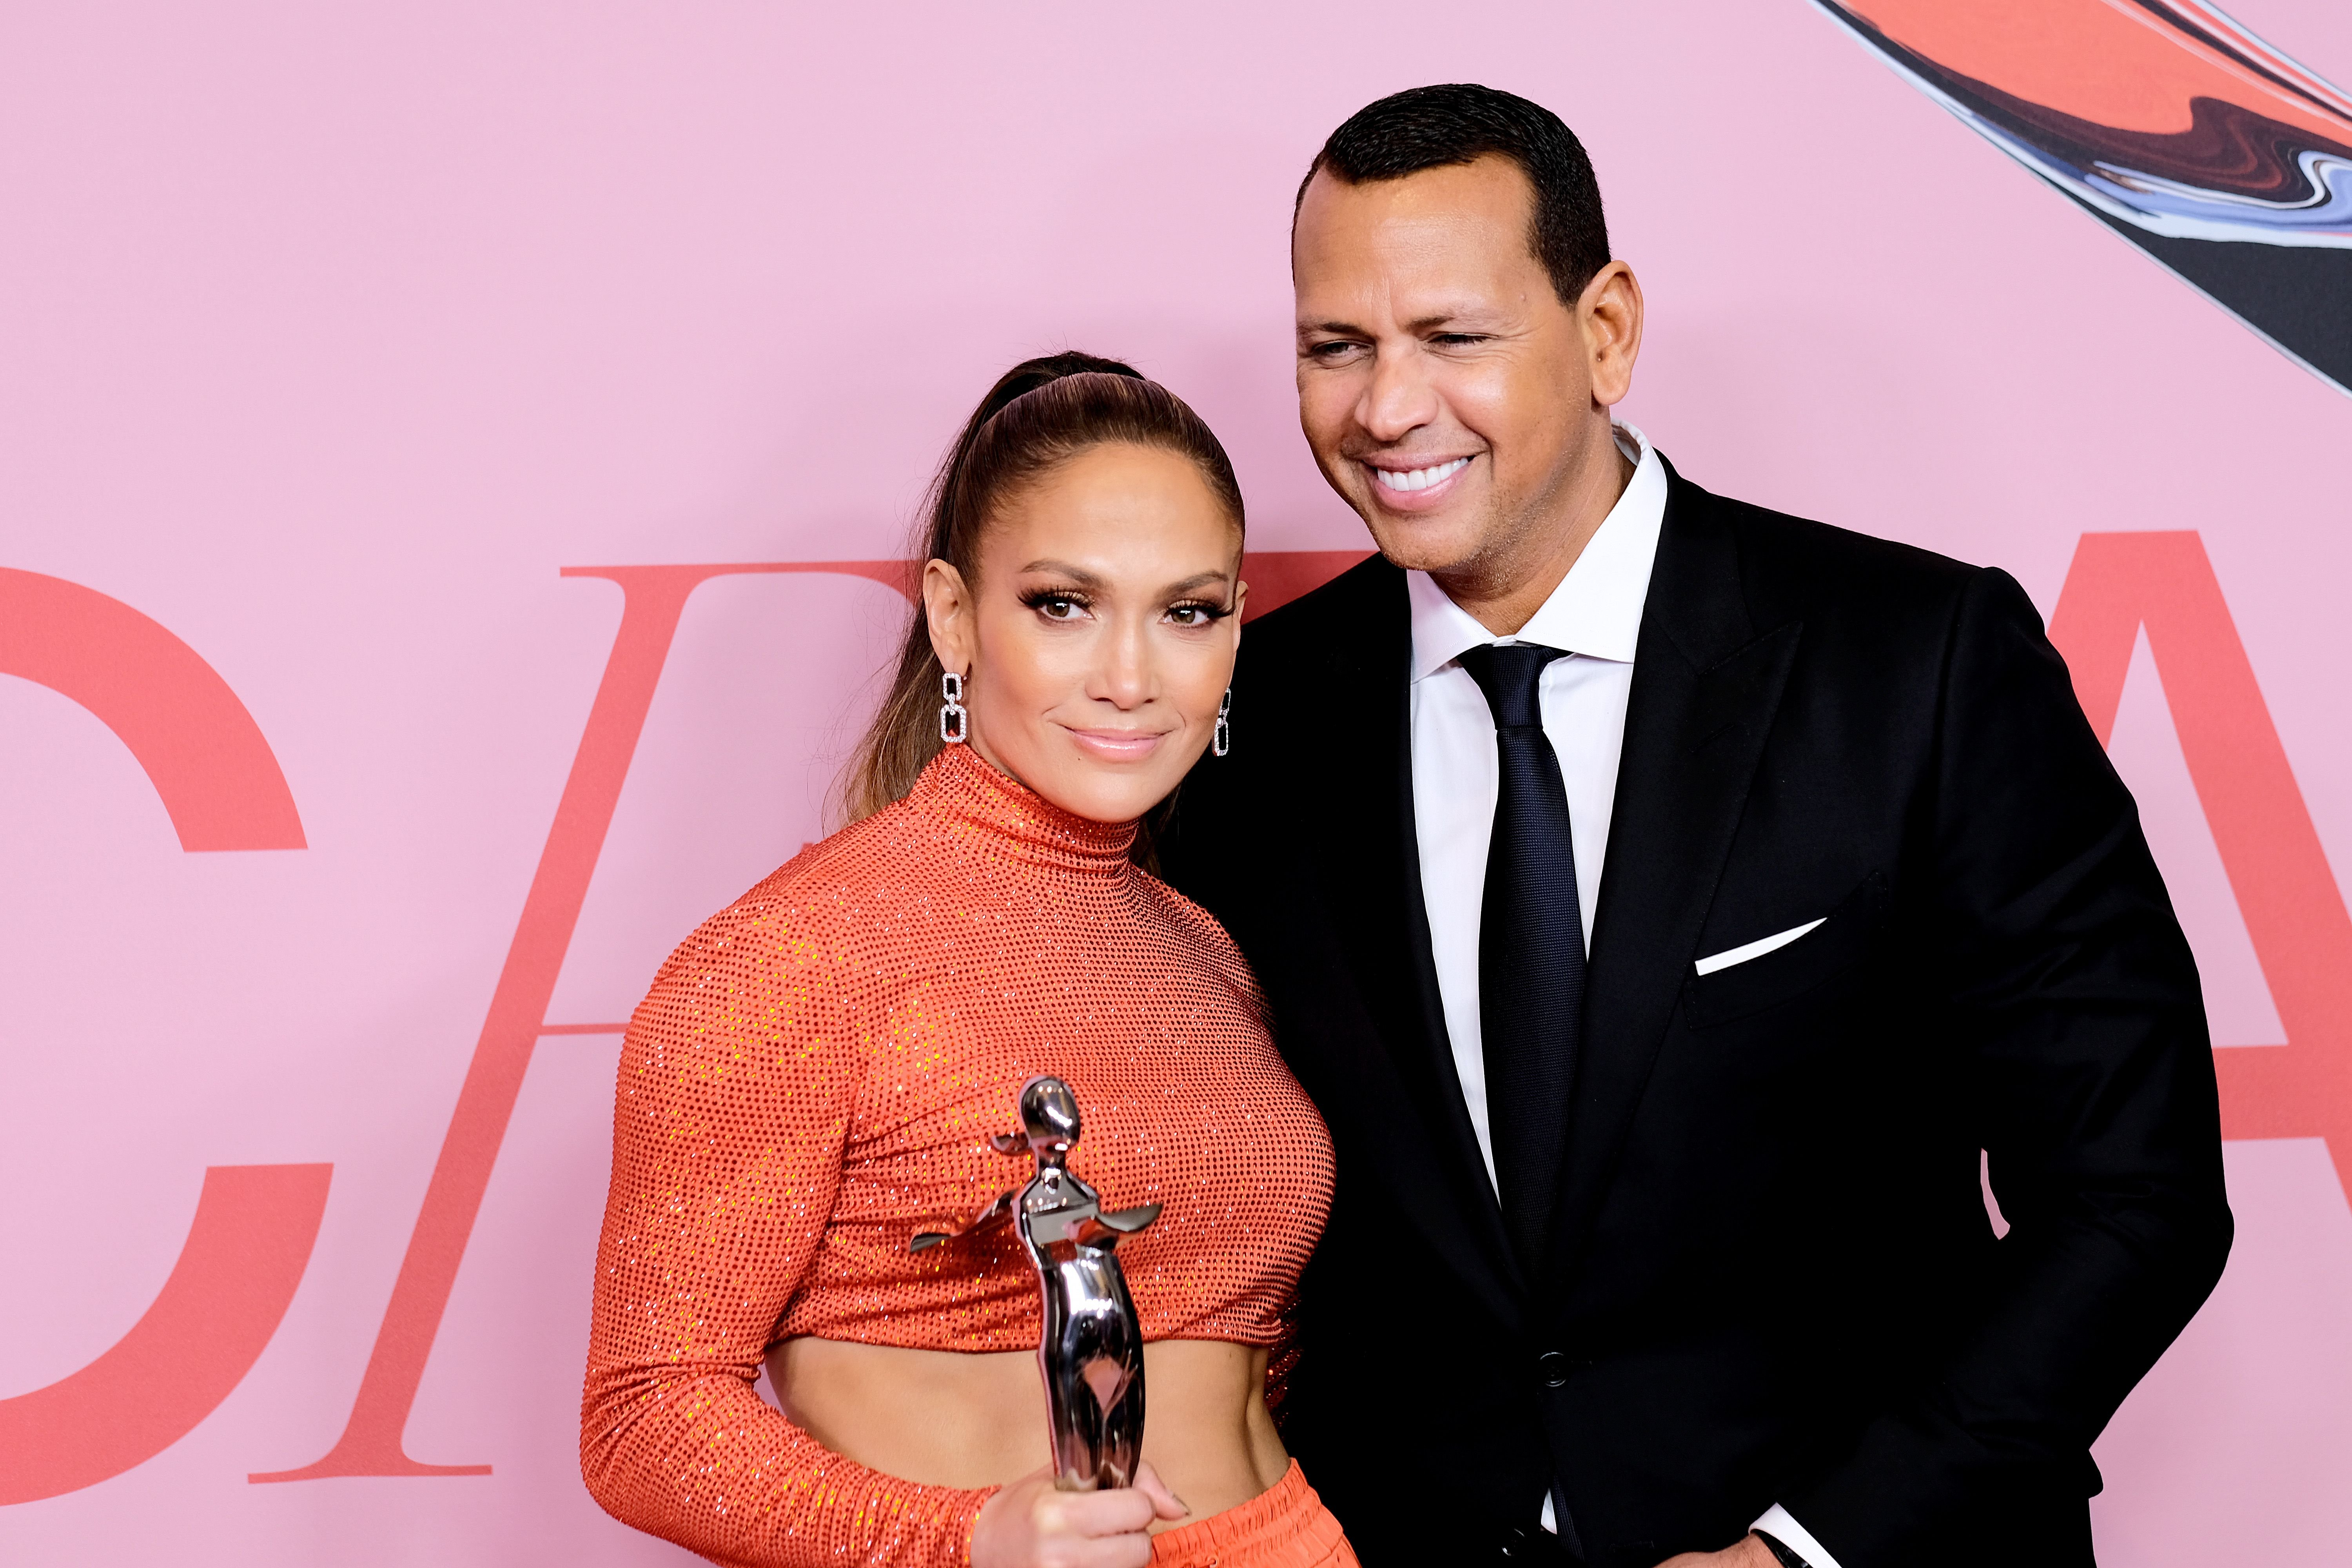 Jennifer Lopez and Alex Rodriguez at Winners Walk during the CFDA Fashion Awards on June 03, 2019, in New York City   Photo: Dimitrios Kambouris/Getty Images